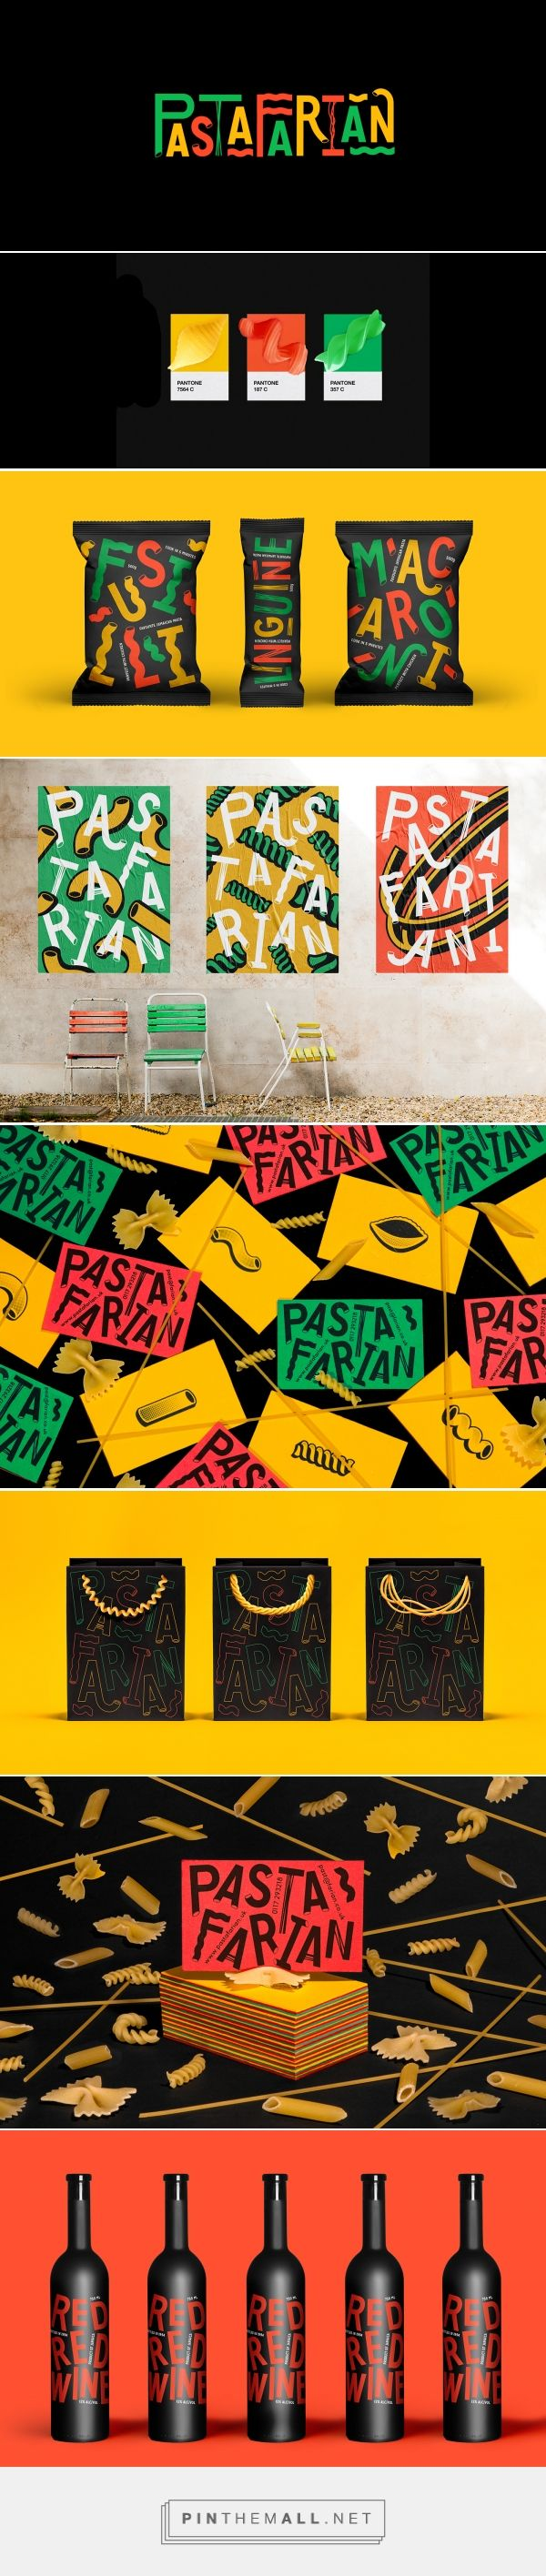 Pastafarian Pasta Branding and Packaging by Ryan Panchal | Fivestar Branding Agency – Design and Branding Agency & Curated Inspiration Gallery